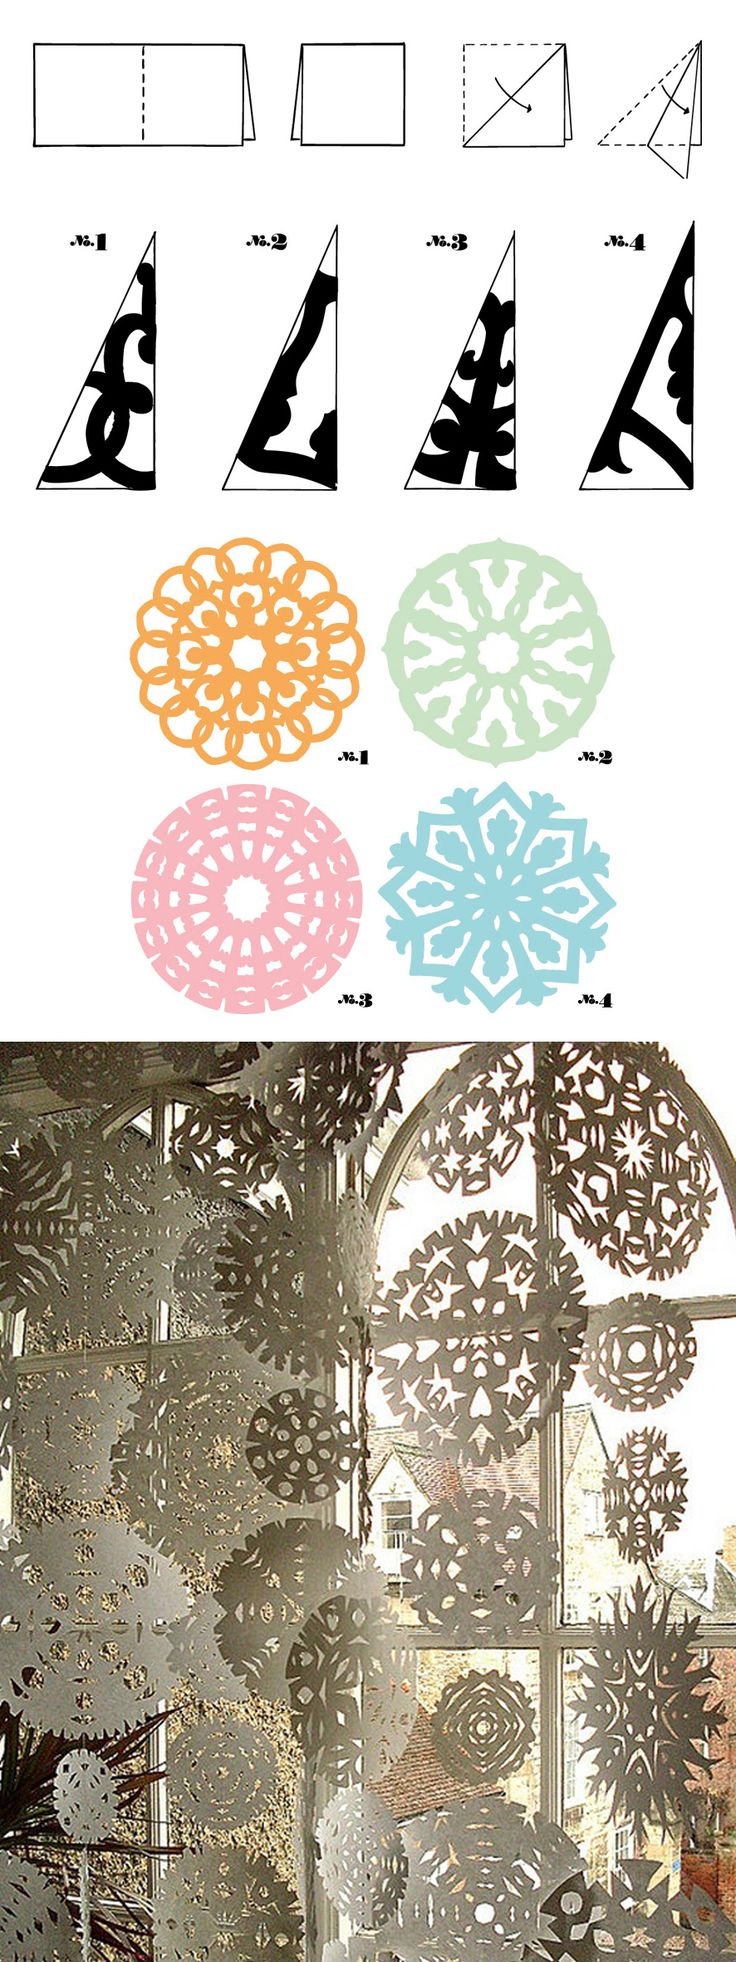 Como hacer copos de nieve de papel/ As making paper snowflakes #recycle design